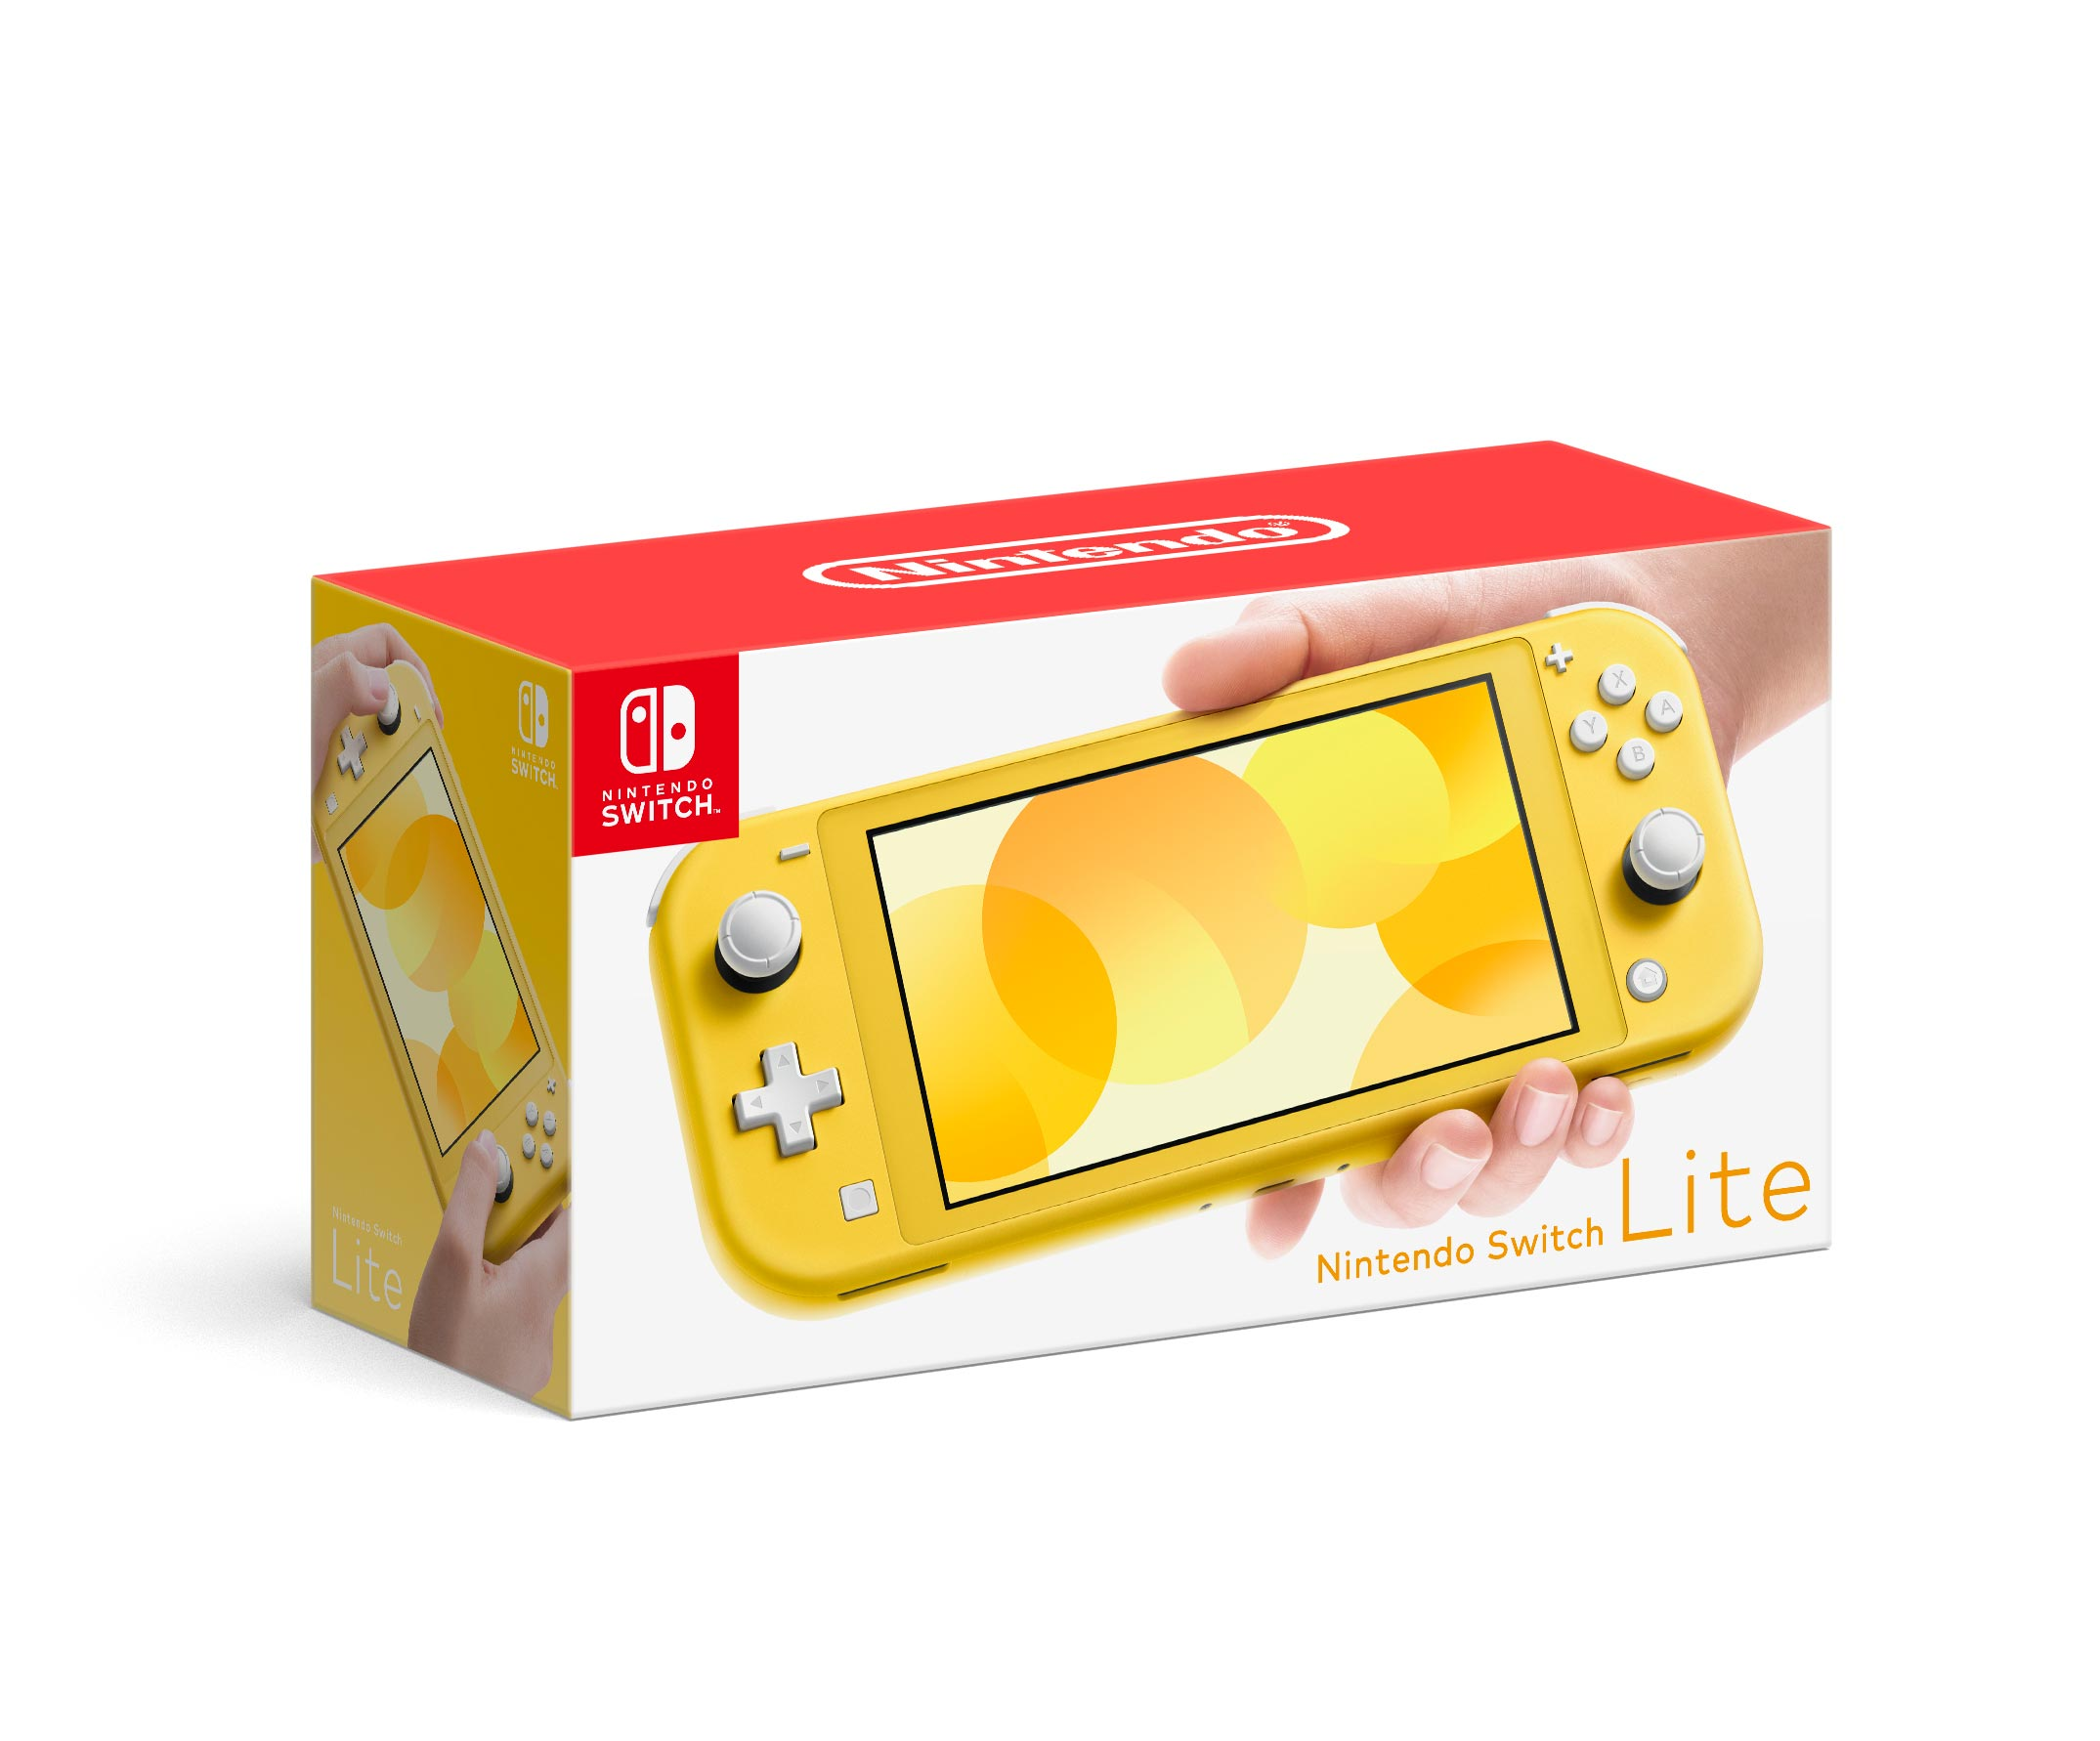 Nintendo Switch Lite 2 out of 3 image gallery